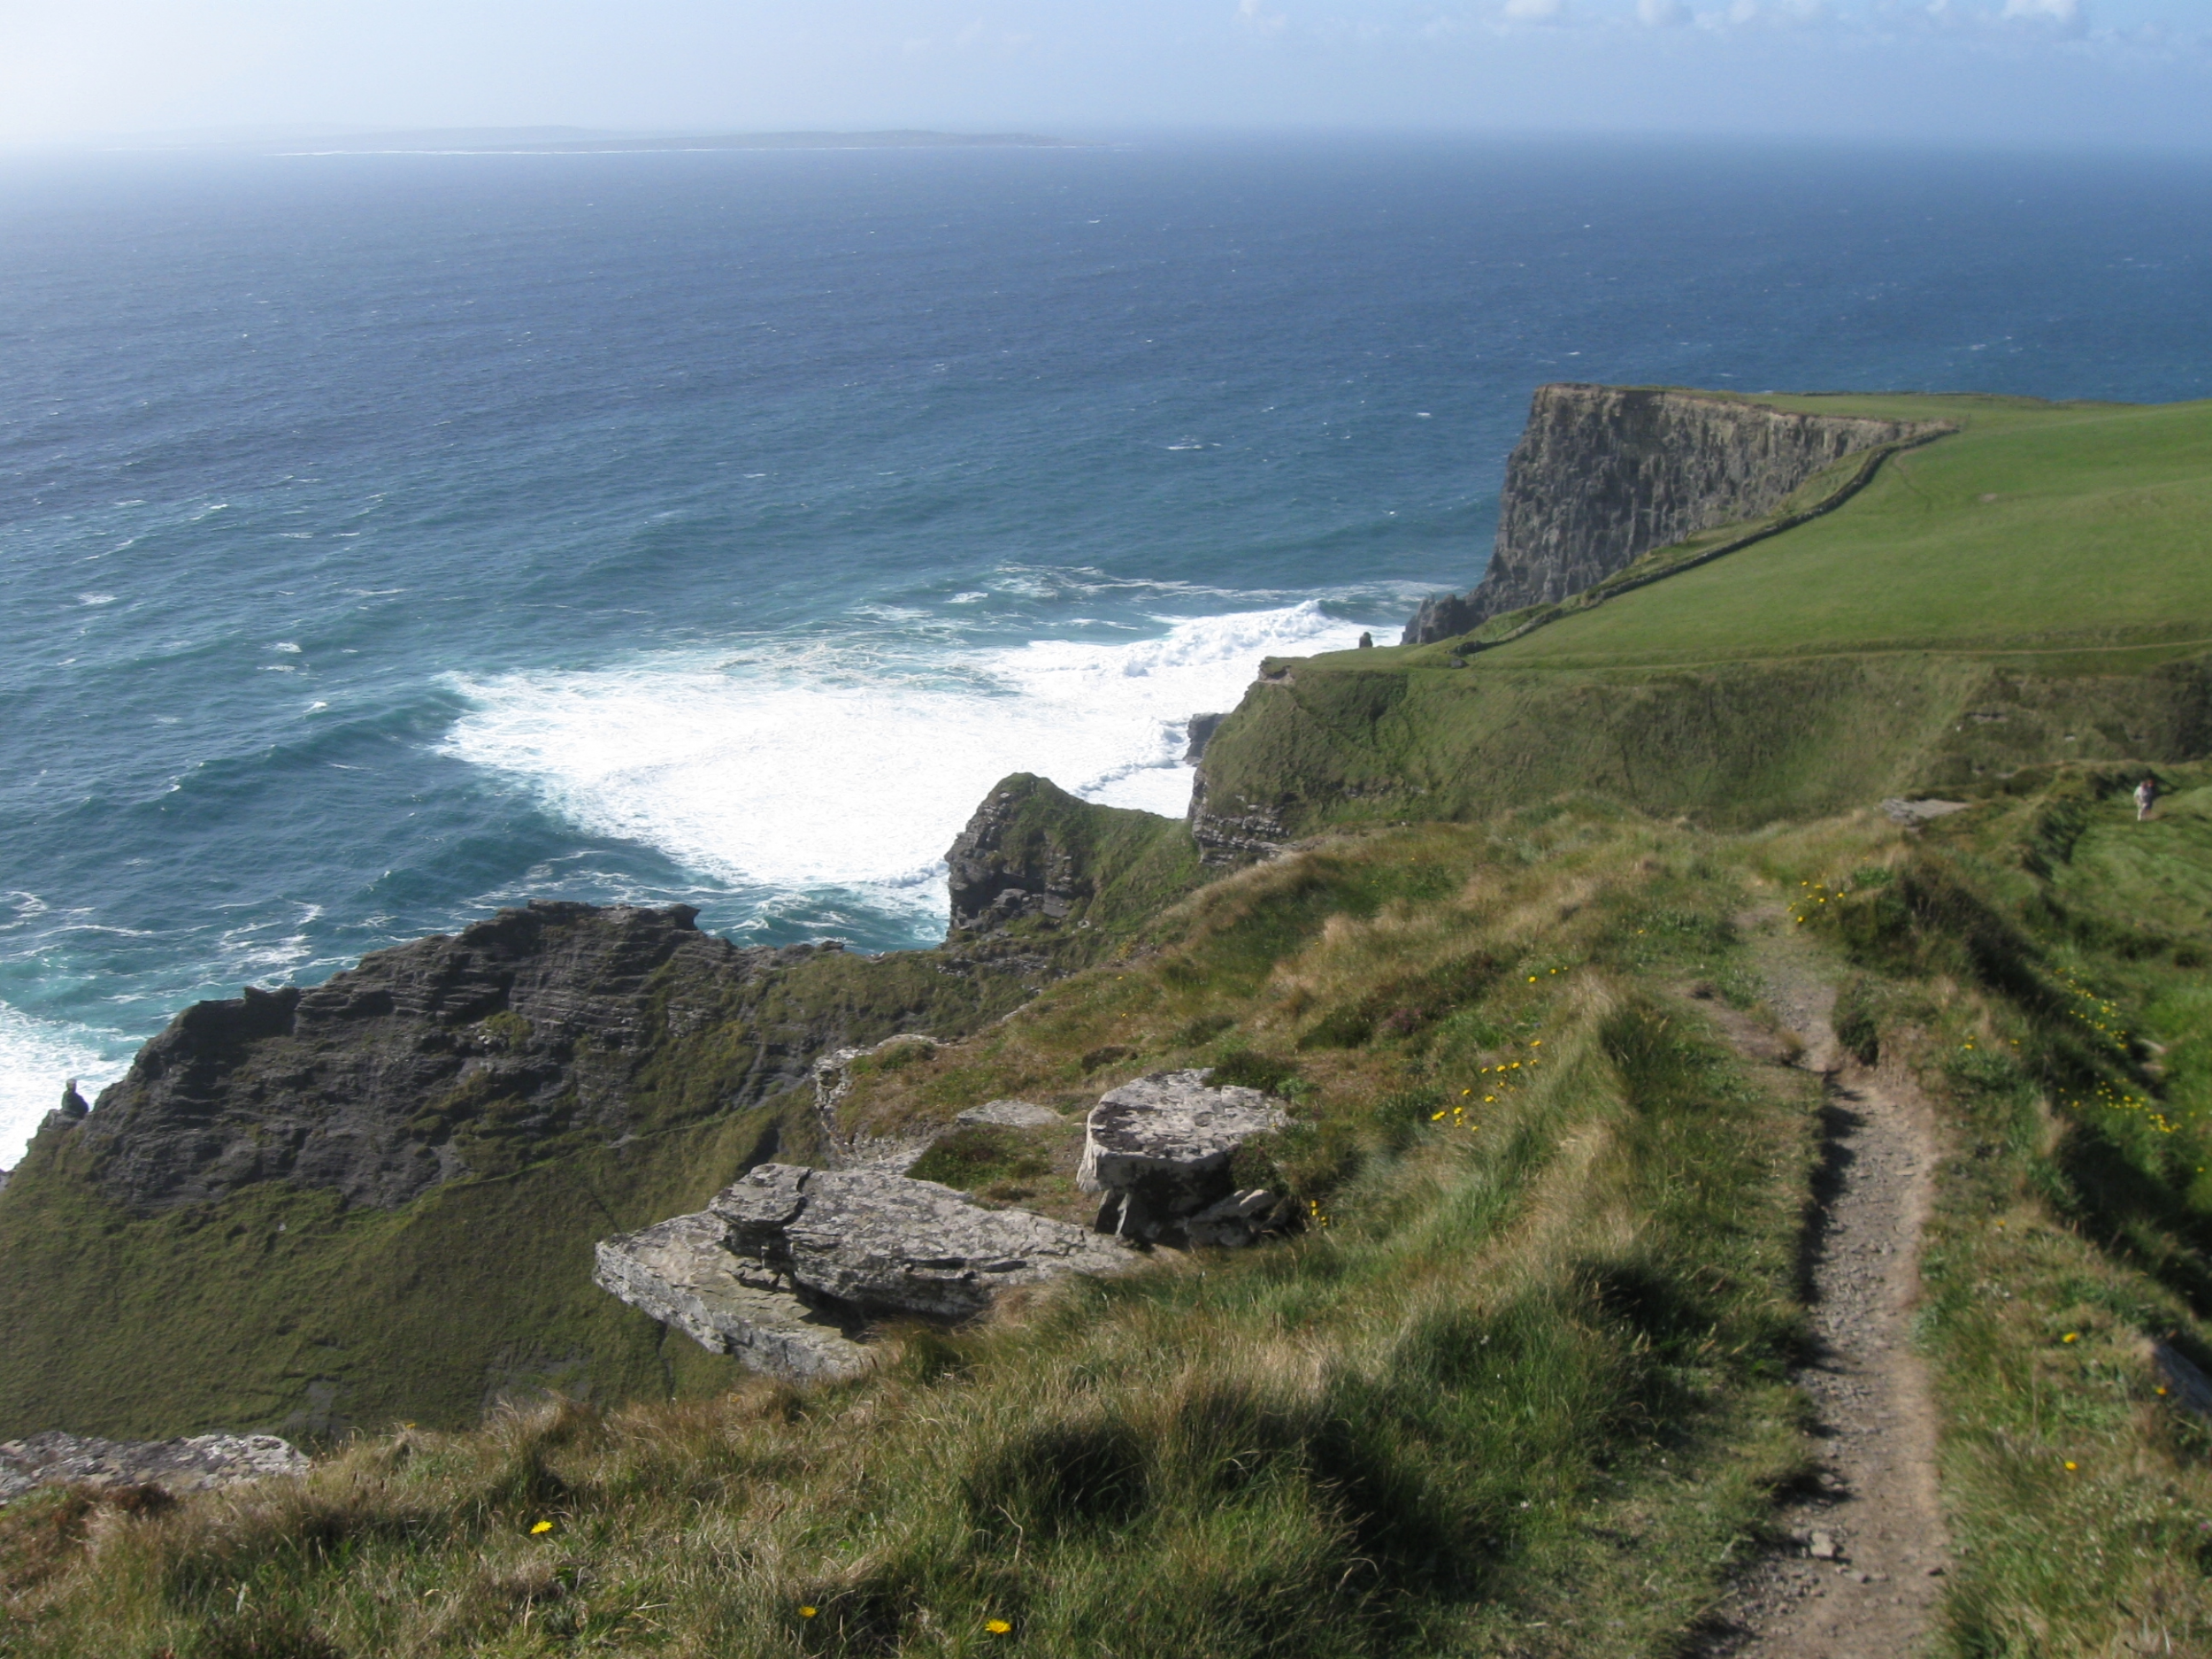 Image of the Cliffs of Mohr, Ireland